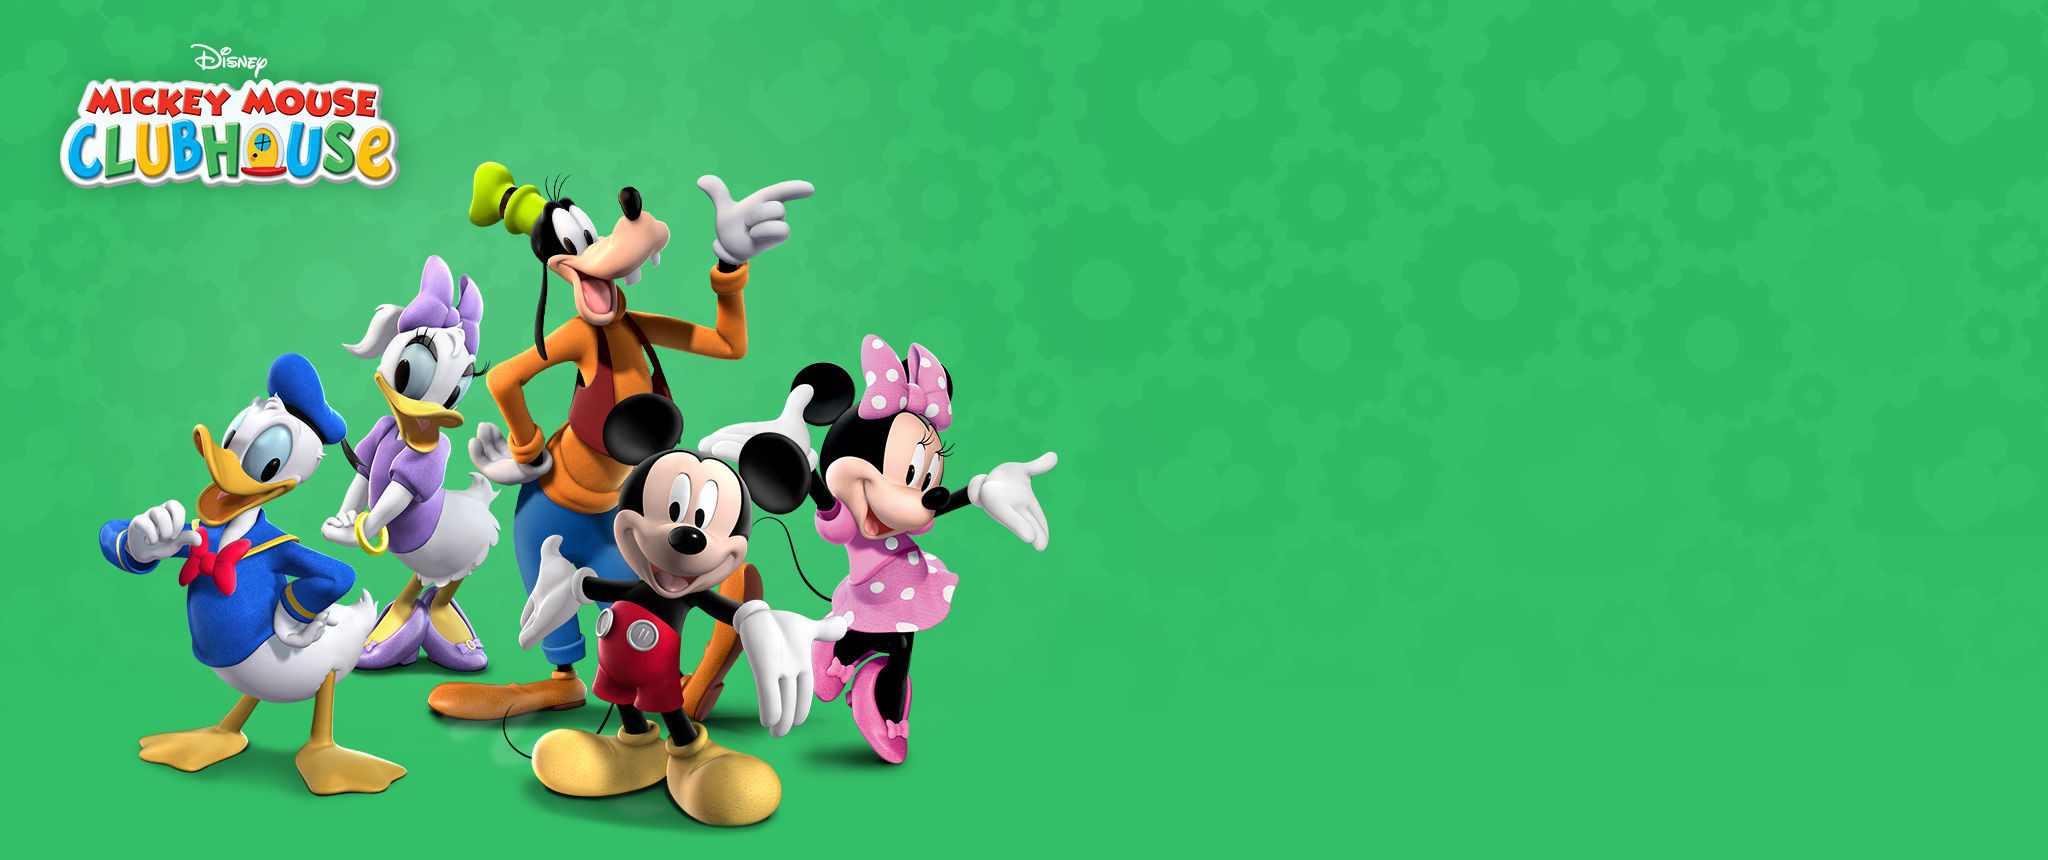 Mickey Mouse Clubhouse Activities | Disney Australia Disney Junior